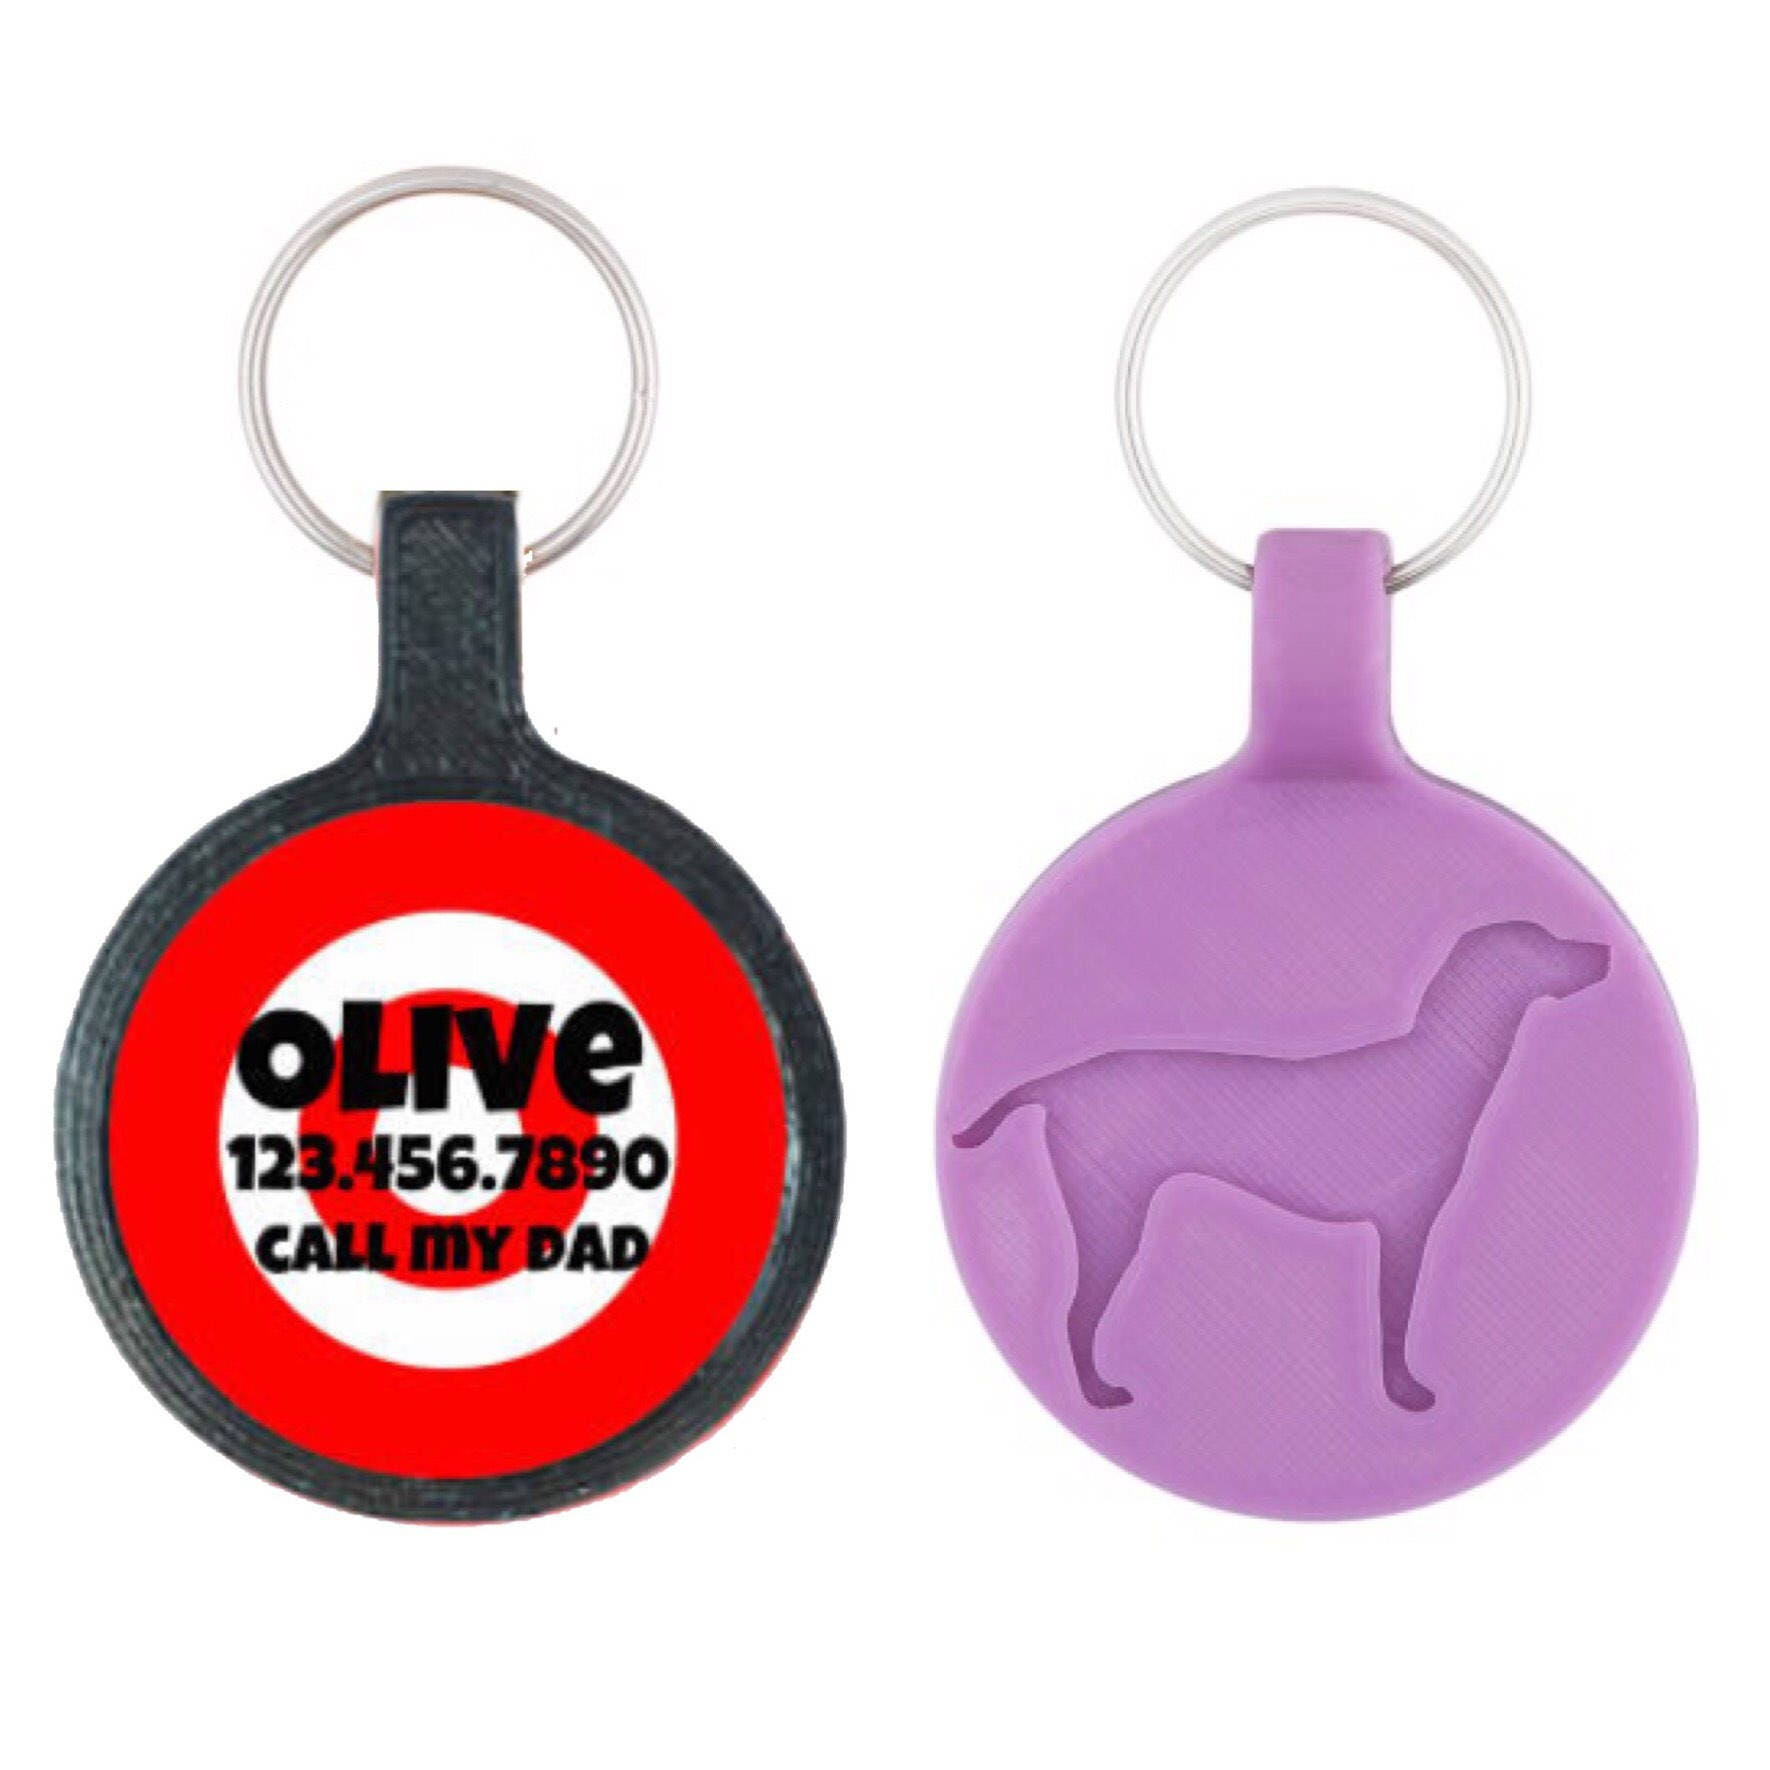 White chef apron target - Target Practice Custom Personalized Dog Id Pet Tag Custom Pet Tag You Choose Tag Size Colors